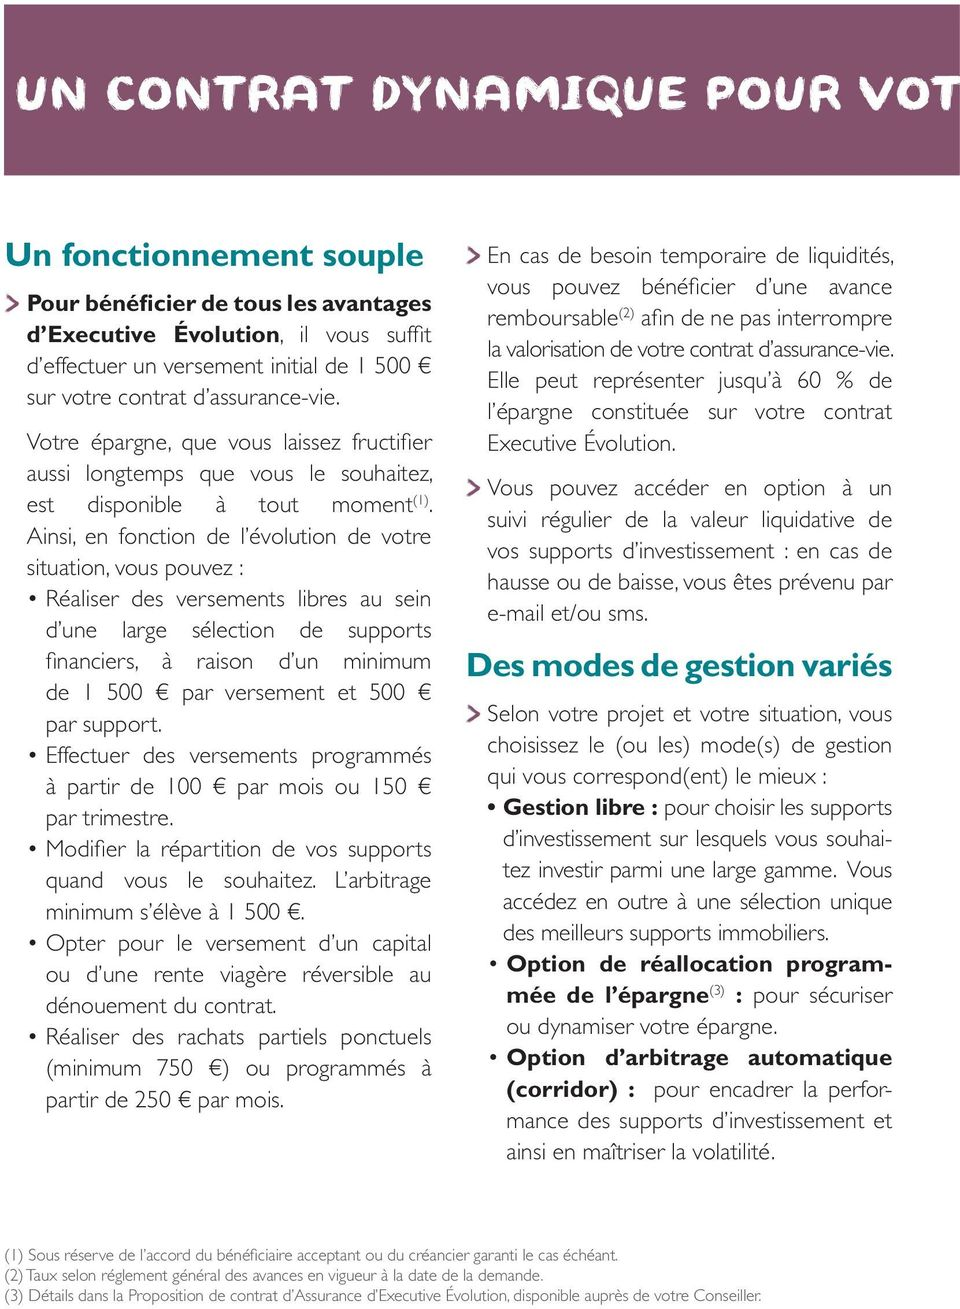 Ainsi, en fonction de l évolution de votre situation, vous pouvez : Réaliser des versements libres au sein d une large sélection de supports financiers, à raison d un minimum de 1 500 par versement